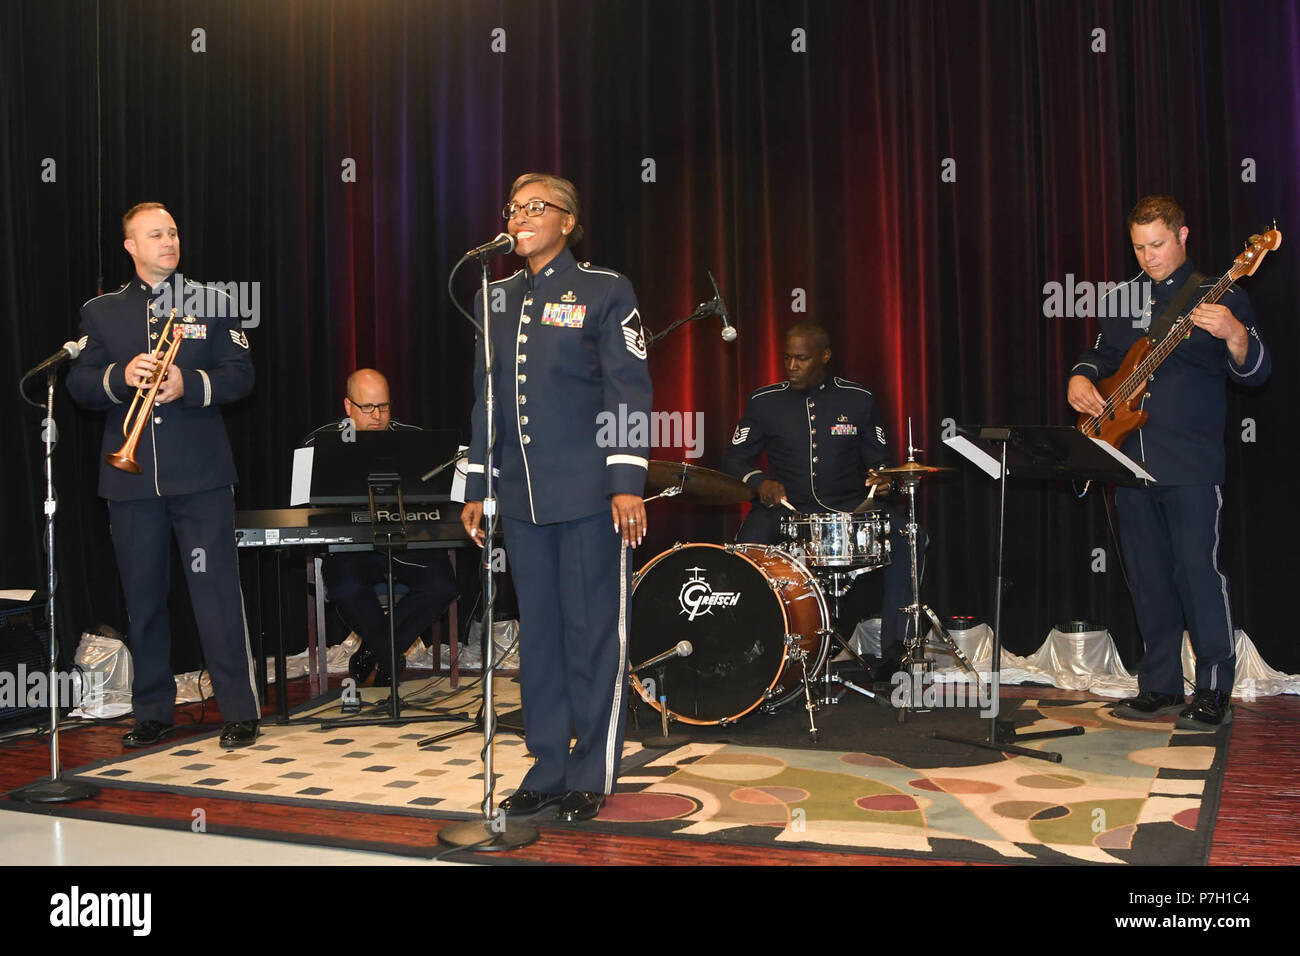 Members of the Air National Guard Band of the Southwest rehearse before their performance at KTUL studio June 26, 2018 in Tulsa, Okla. As part of their annual tour, the band is performing in concerts across Kansas and Oklahoma. (Air National Guard photo by Senior Airman De'Jon Williams) Stock Photo